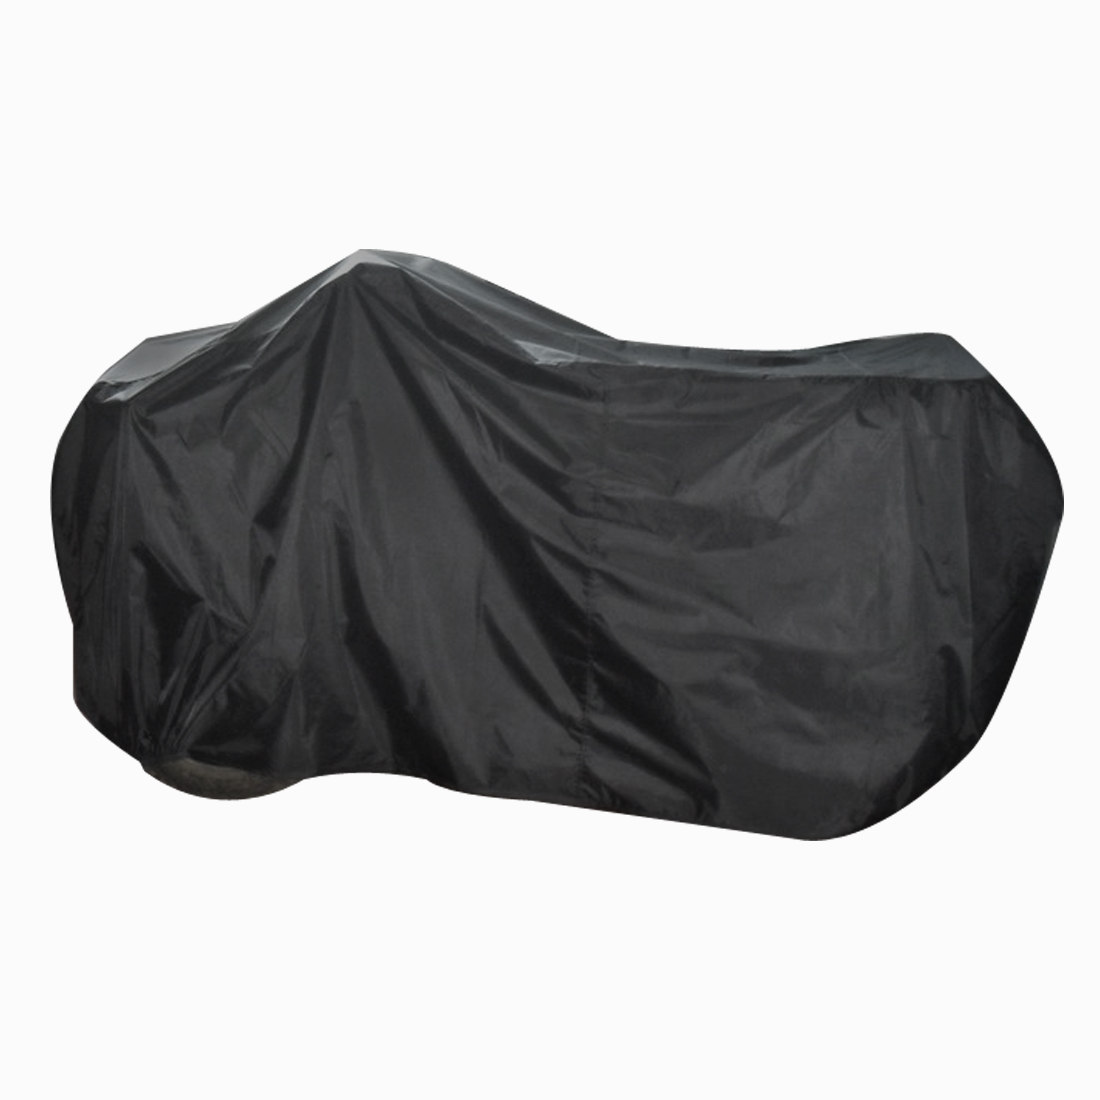 Waterproof Weather Dust Resistant Quad Bike ATV Cover Black 256cm Long